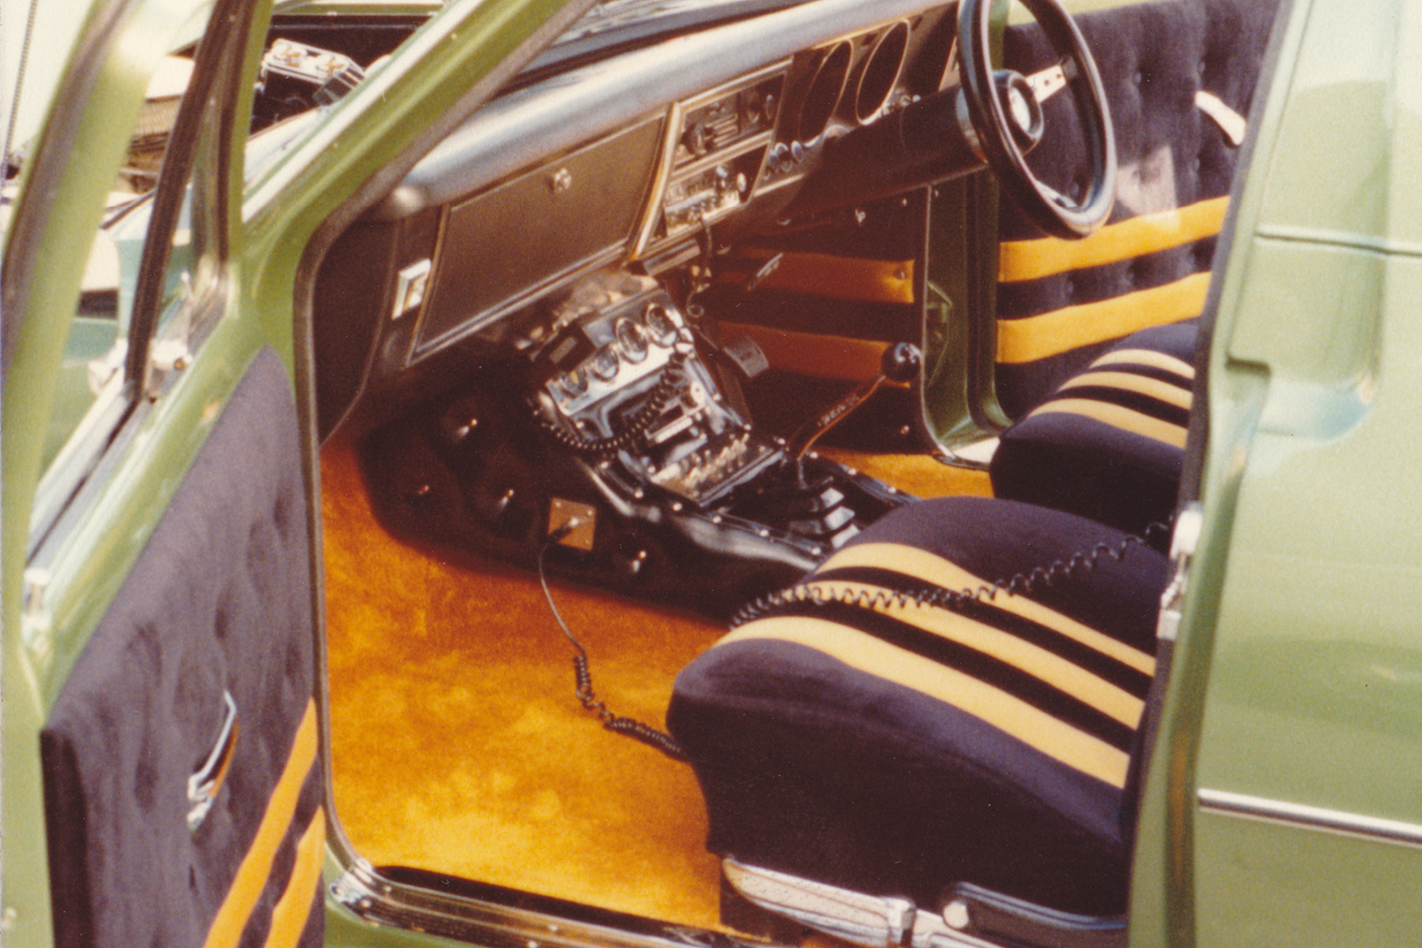 Green -Knight -HG-Panelvan -interior